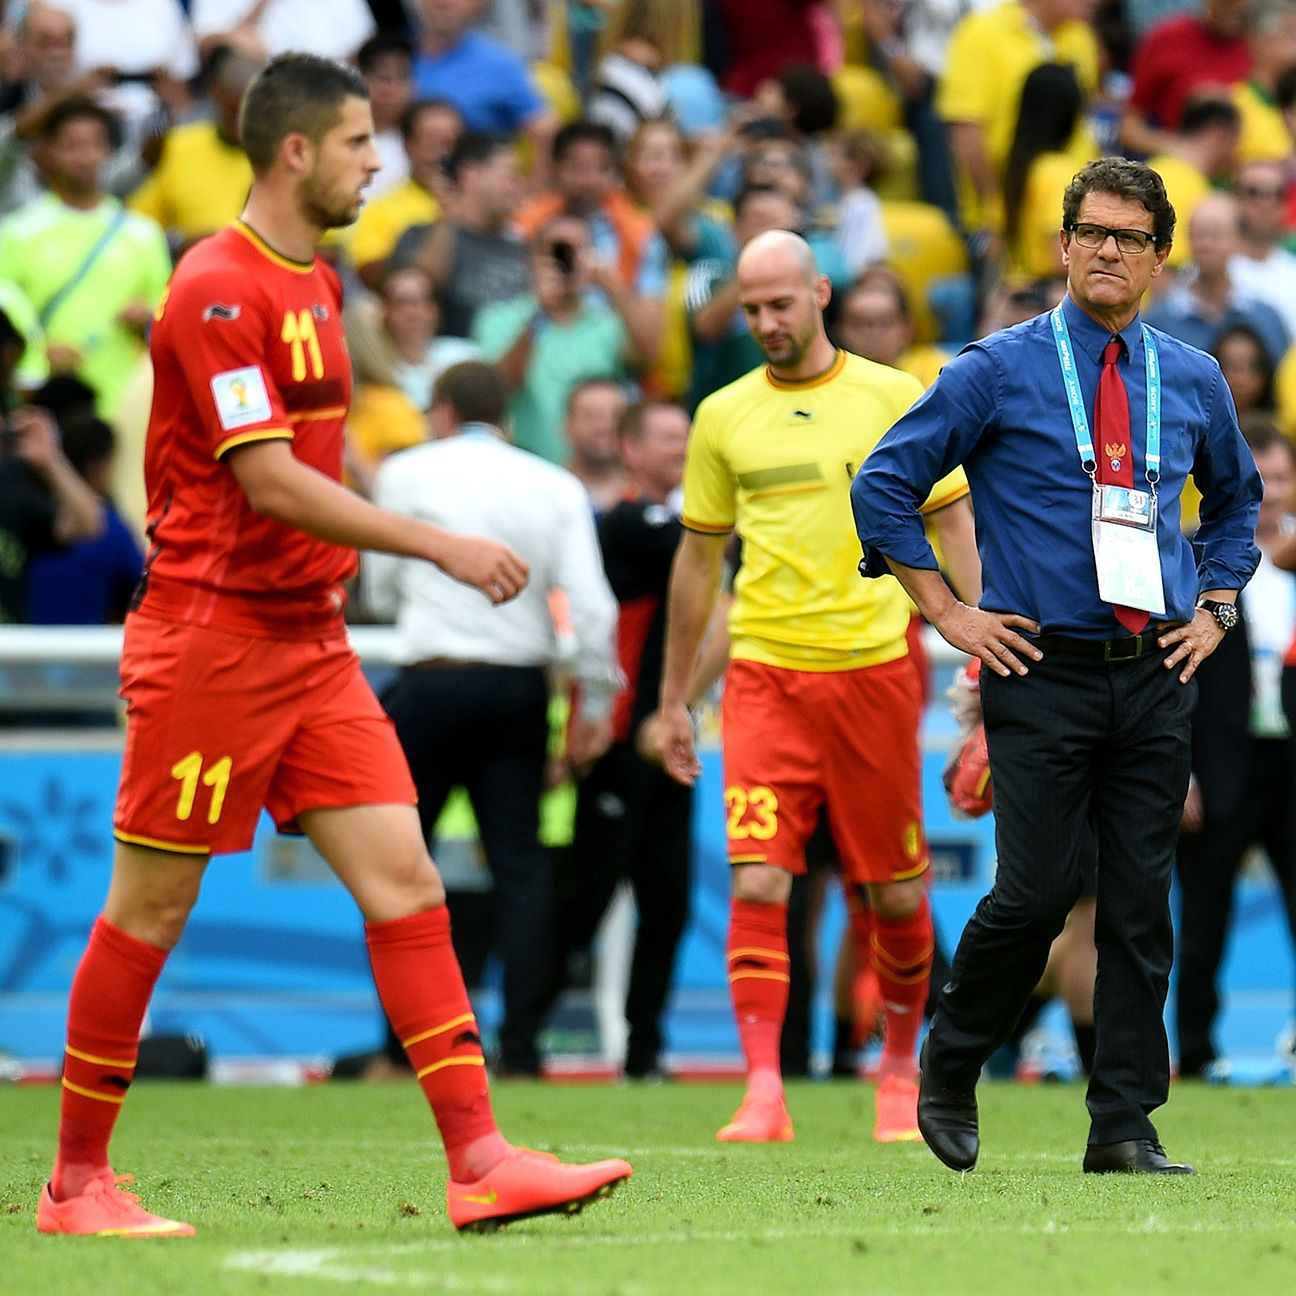 Fabio Capello's needlessly defensive tactics have put Russia in grave danger of an early World Cup exit.